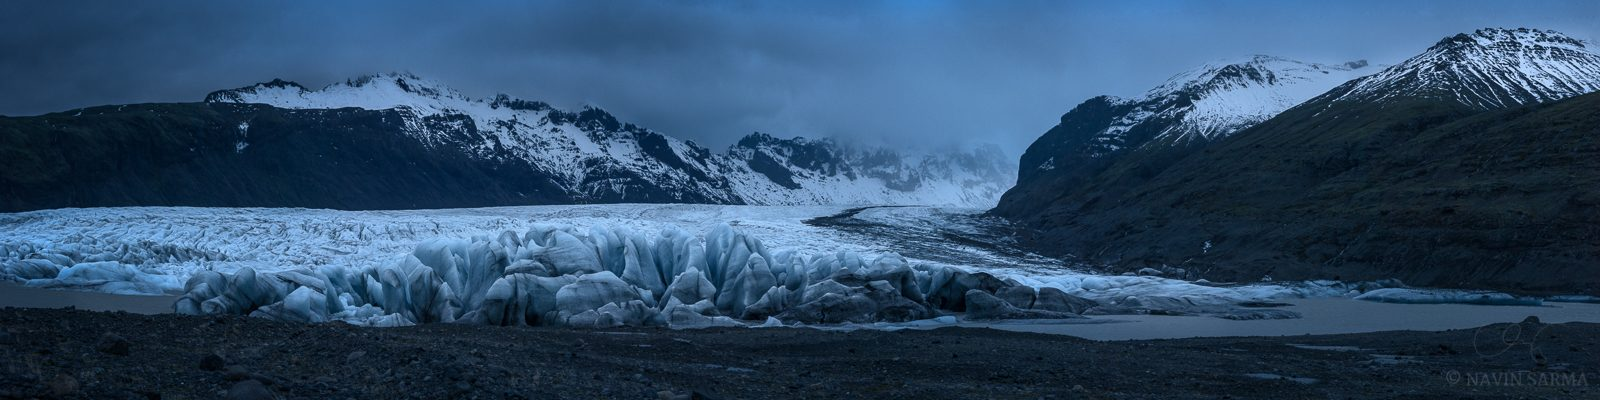 Massive shapes at the edge of the Vatnajökull glacier trail far into the valley during a somber sunset